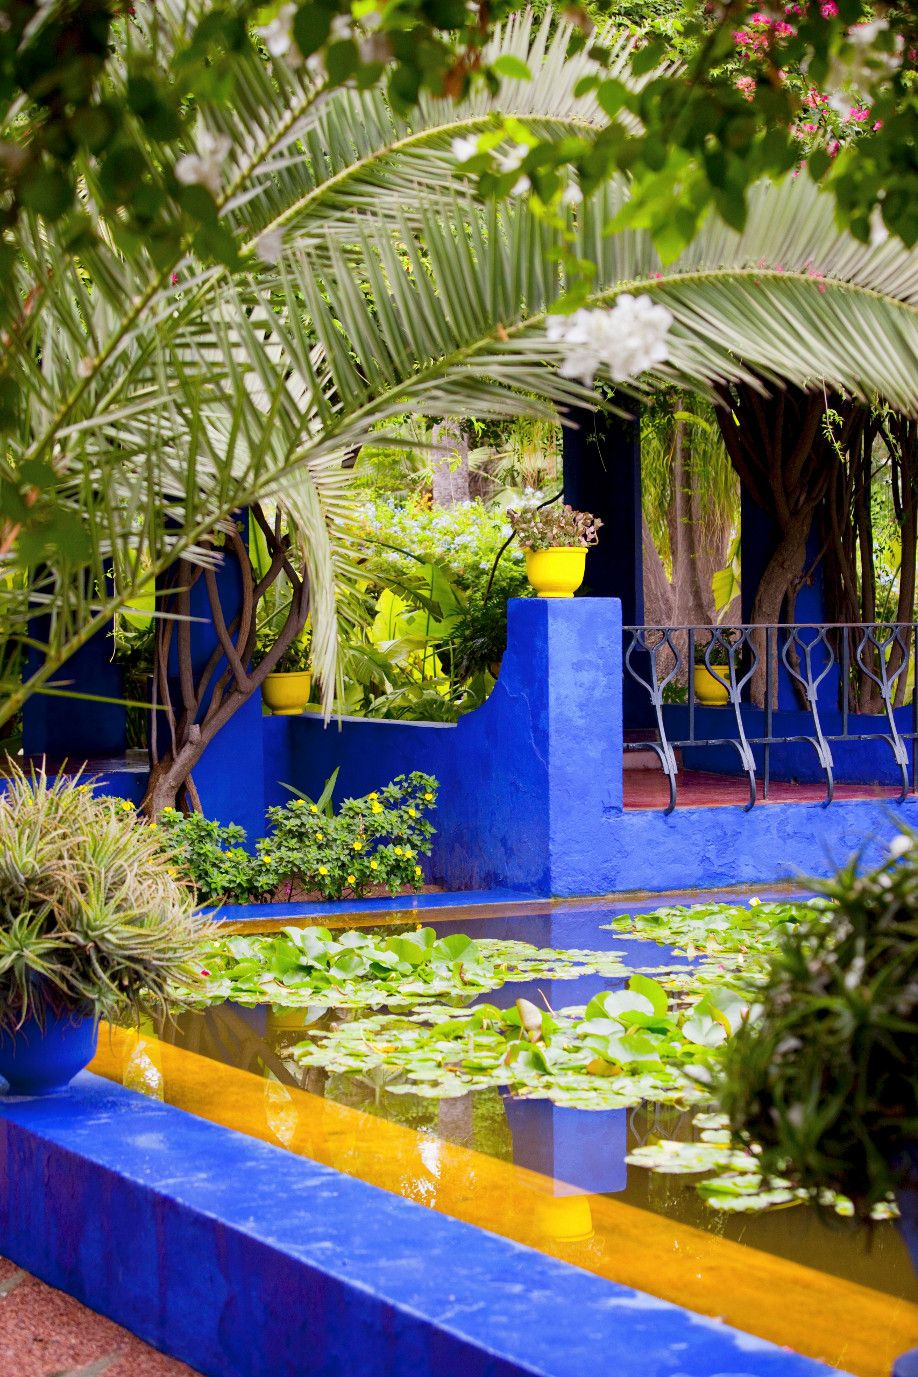 le jardin majorelle le jardin bleu de marrakech marrakesh marrakech and morocco. Black Bedroom Furniture Sets. Home Design Ideas